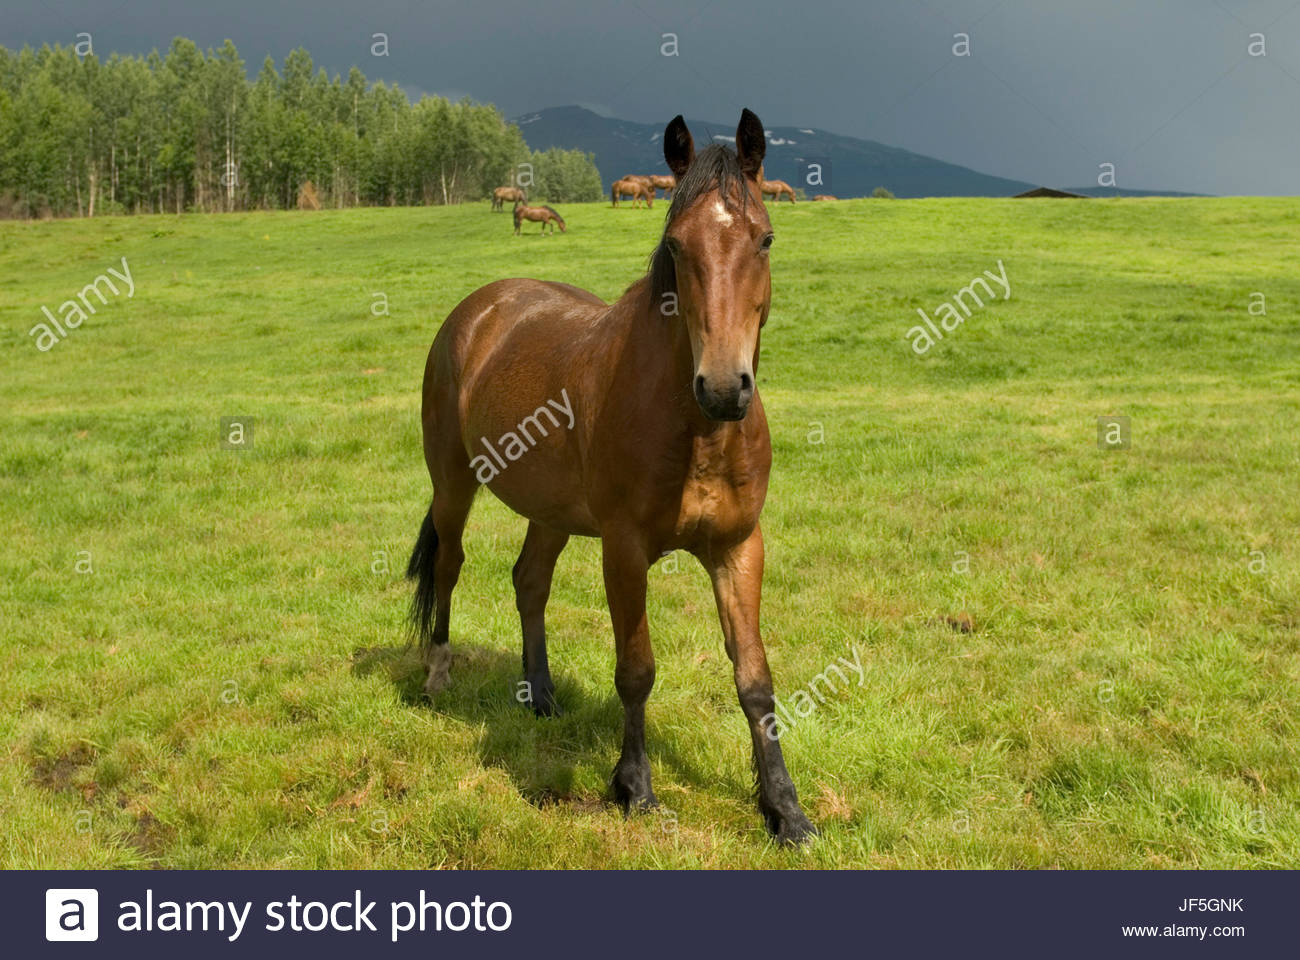 Horses in a pasture. - Stock Image